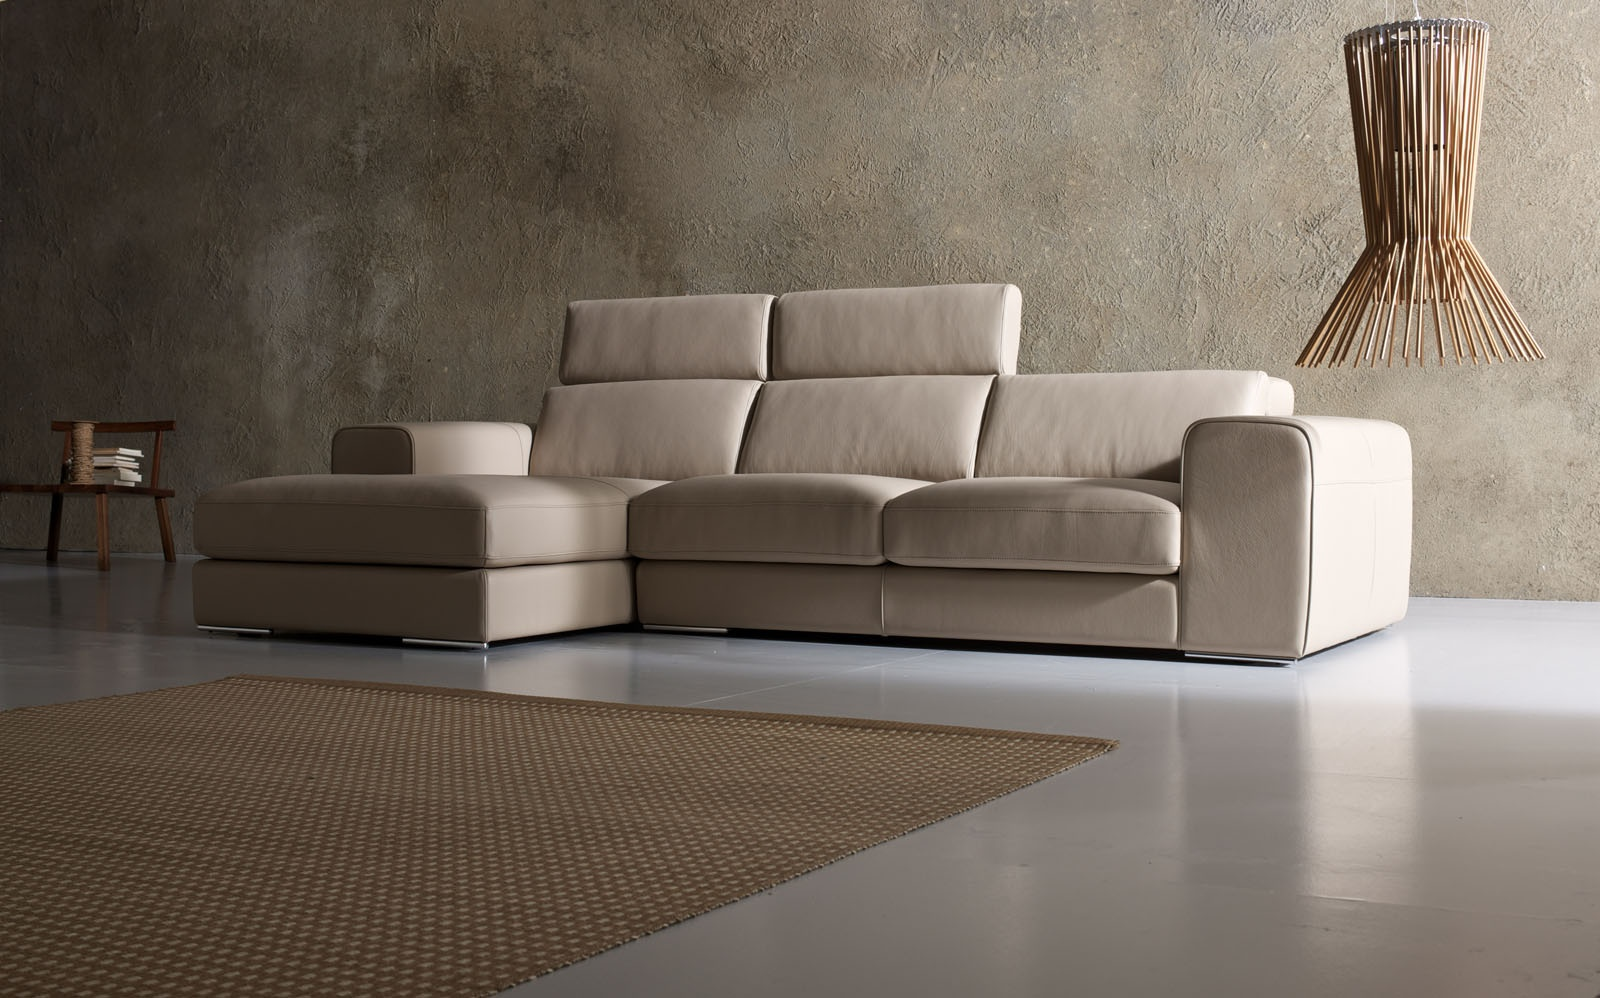 Couch Avenue From The Italian Manufacturer Alberta